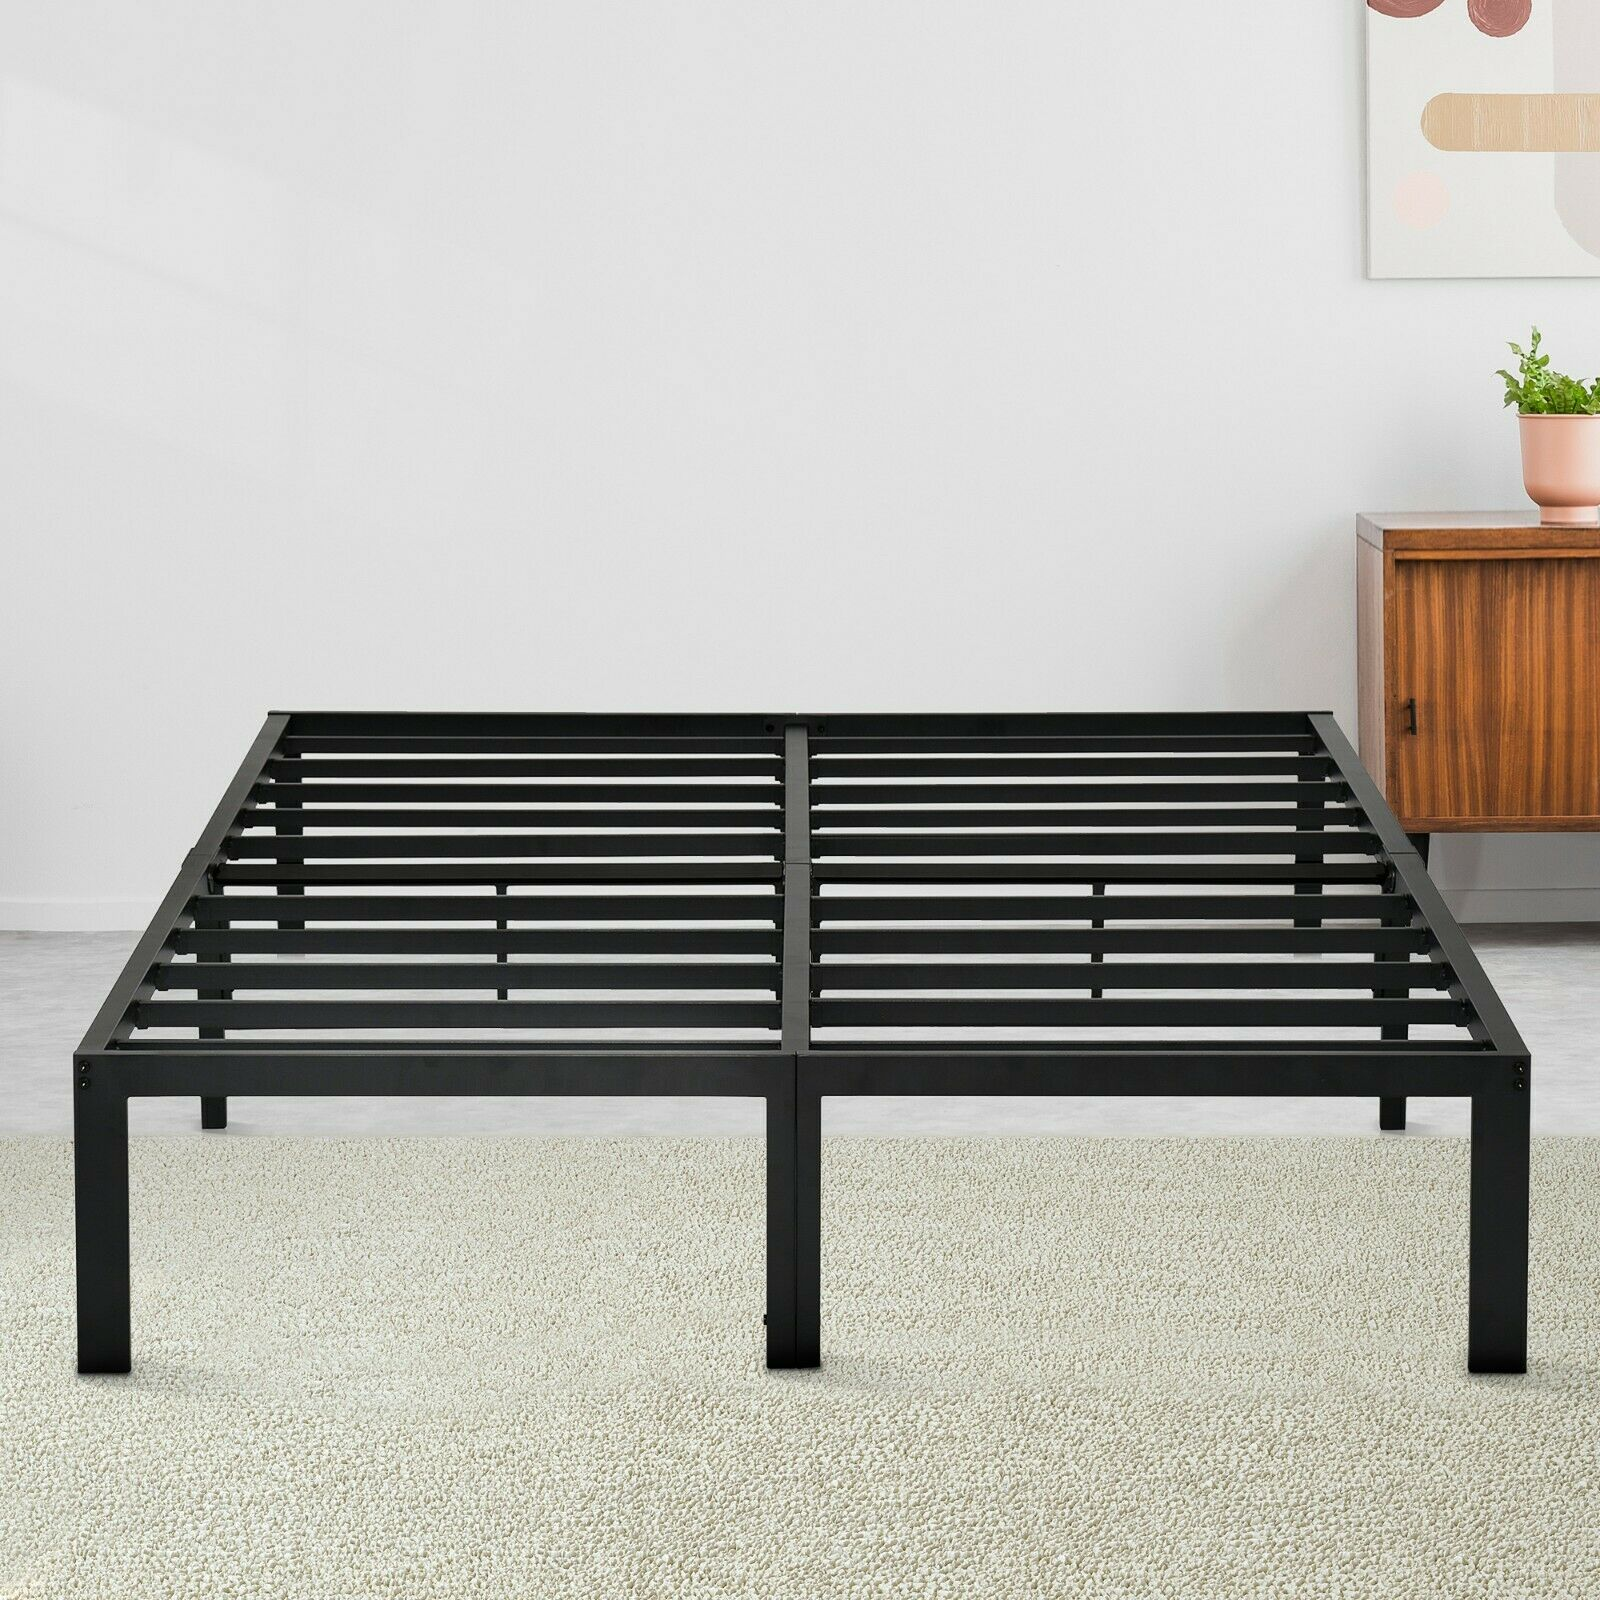 SLEEPLACE 14 Steel Bed Frame Sturdy Platform Bed Twin TwinXL